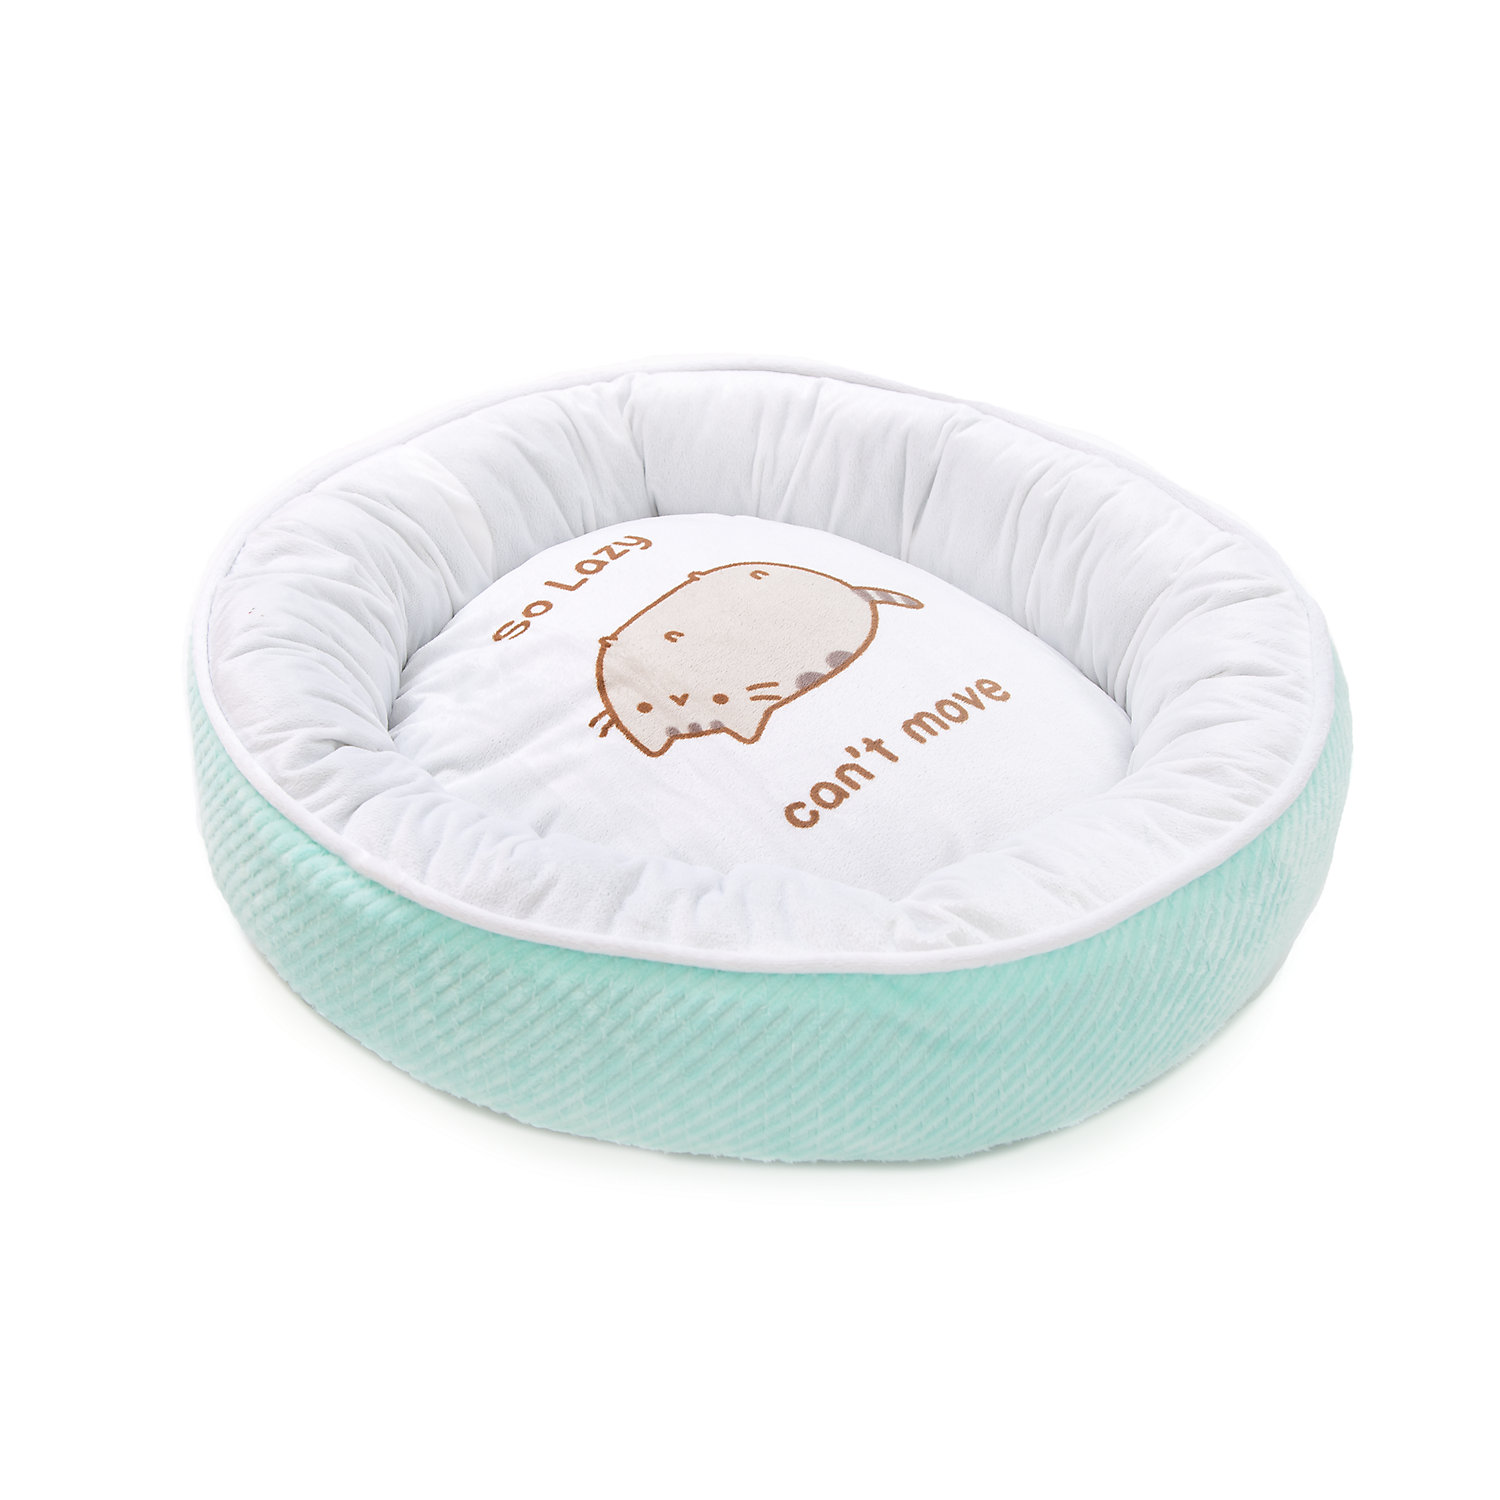 Pusheen Plush Cat Bed